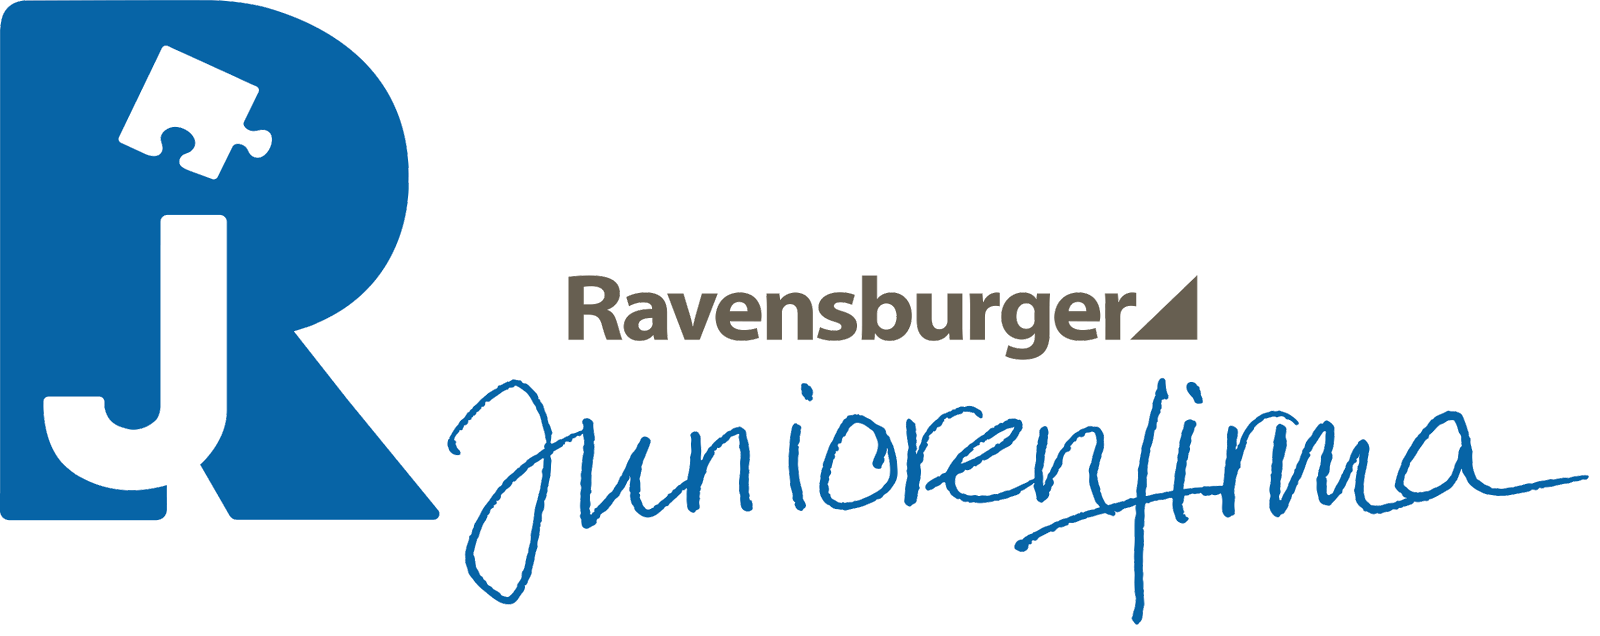 Ravensburger Juniorenfirma